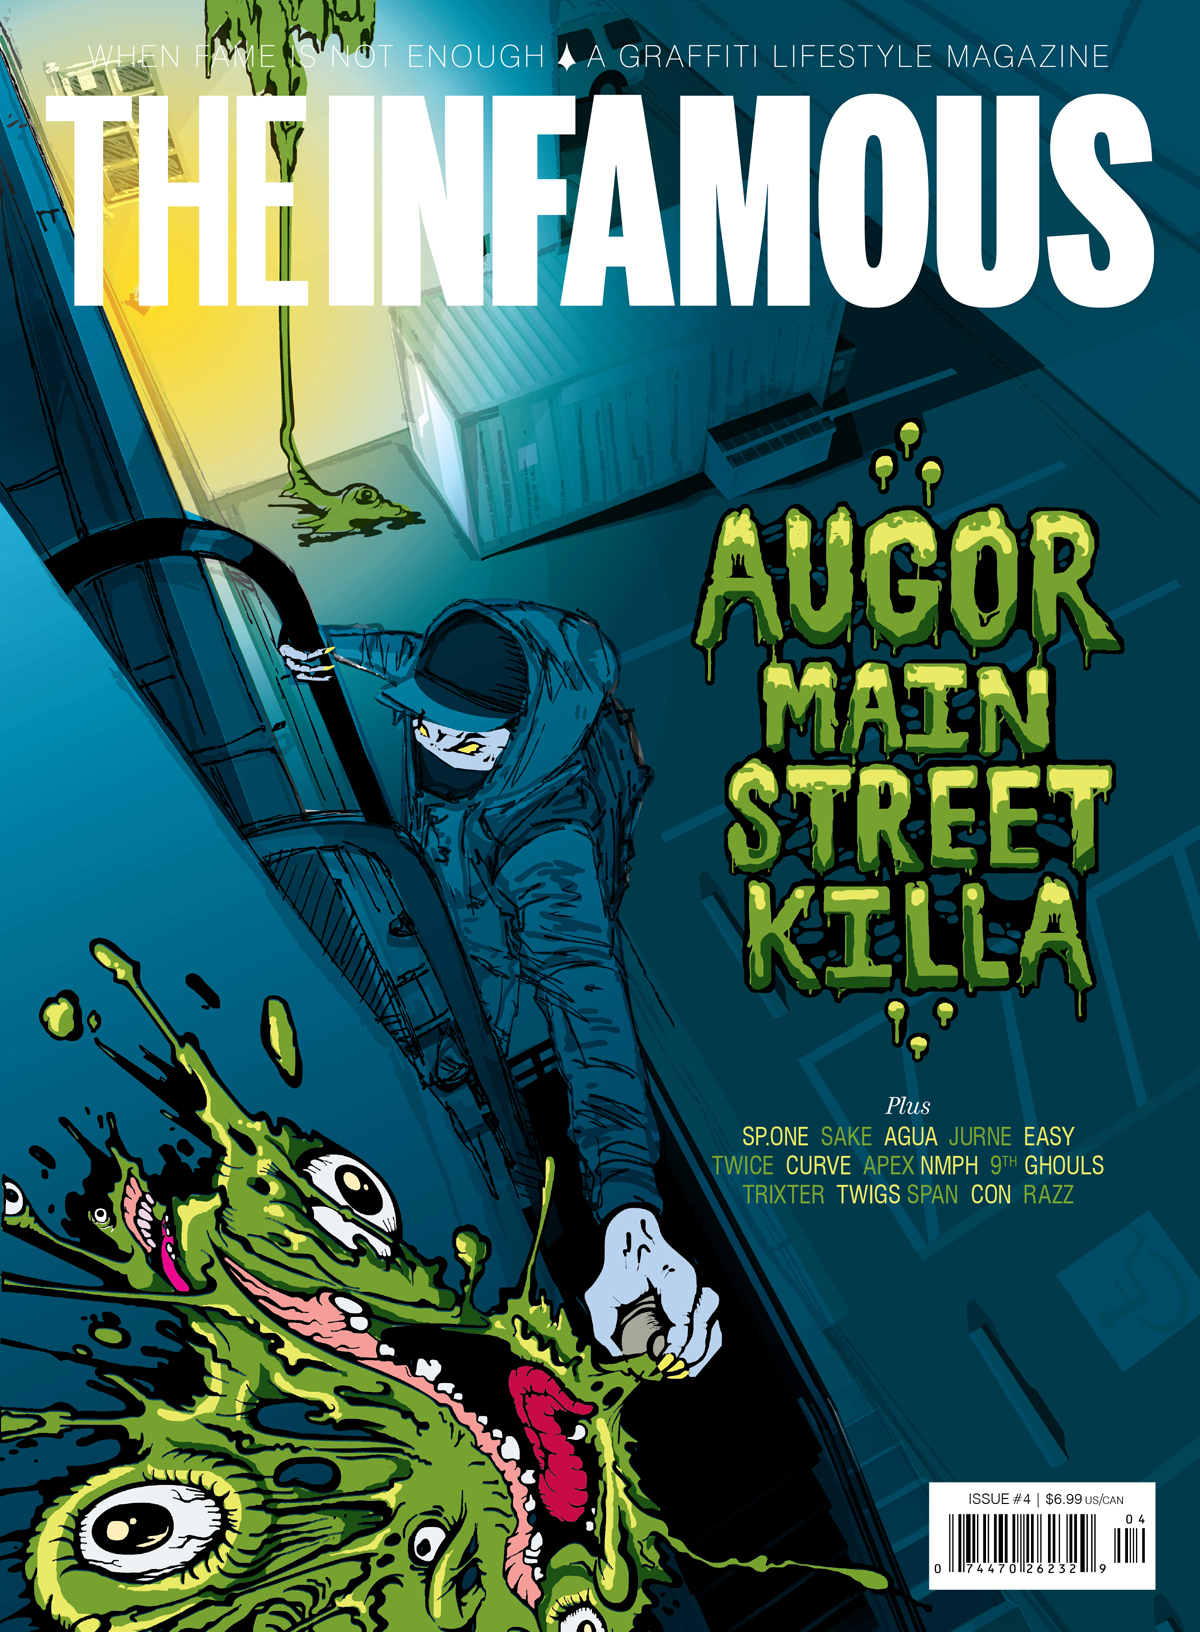 Cover of Issue 4 of The Infamous magazine, 2011. Illustration by Ikews.